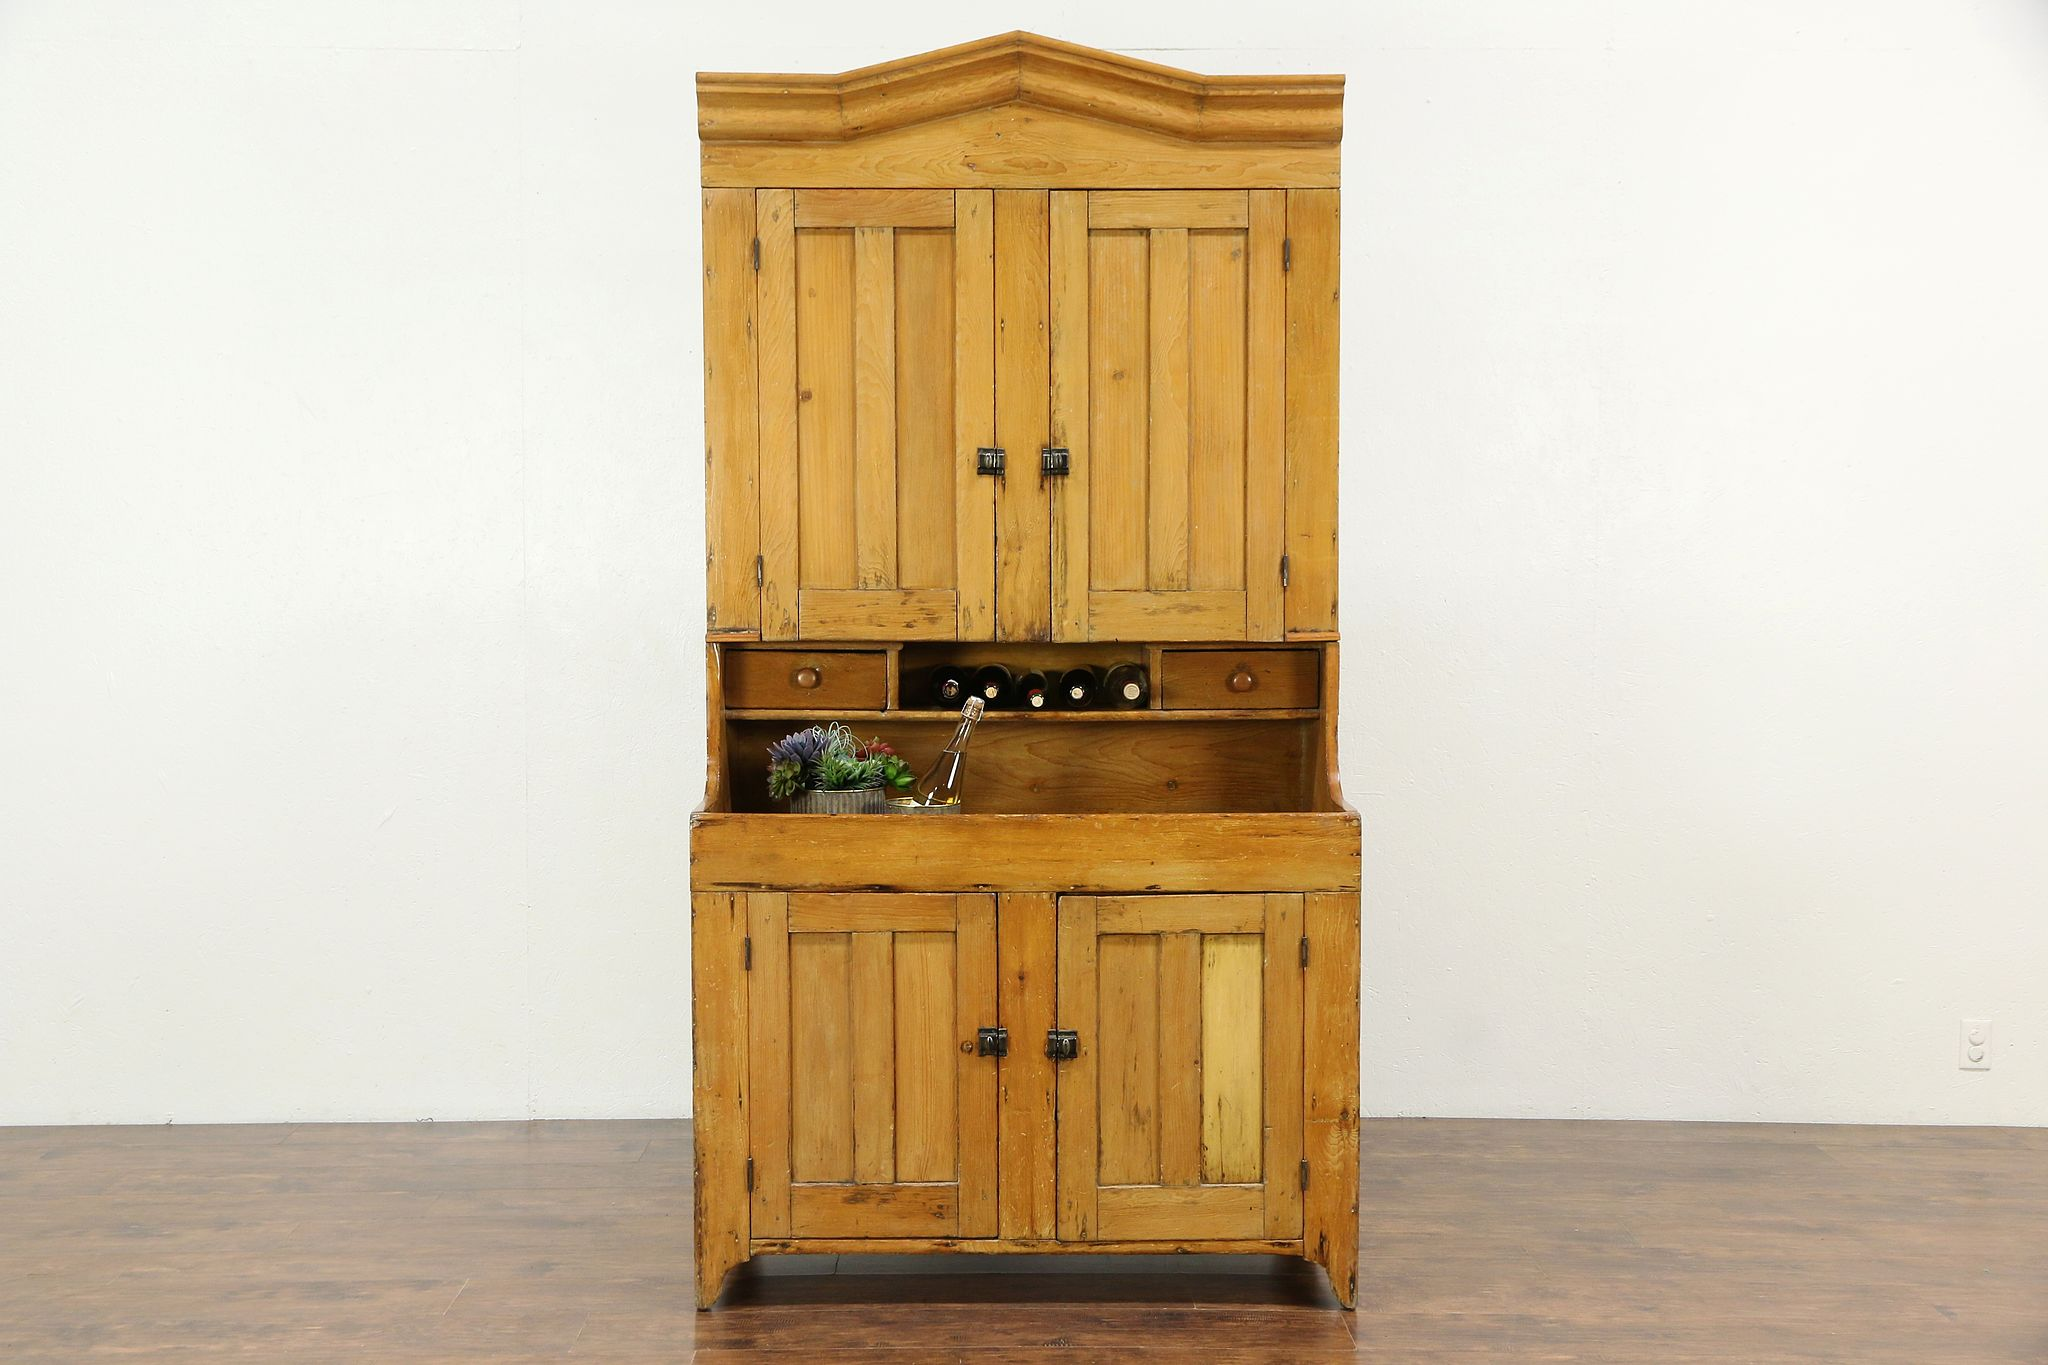 Country Pine Primitive 1870 Antique Kitchen Pantry Cupboard & Dry